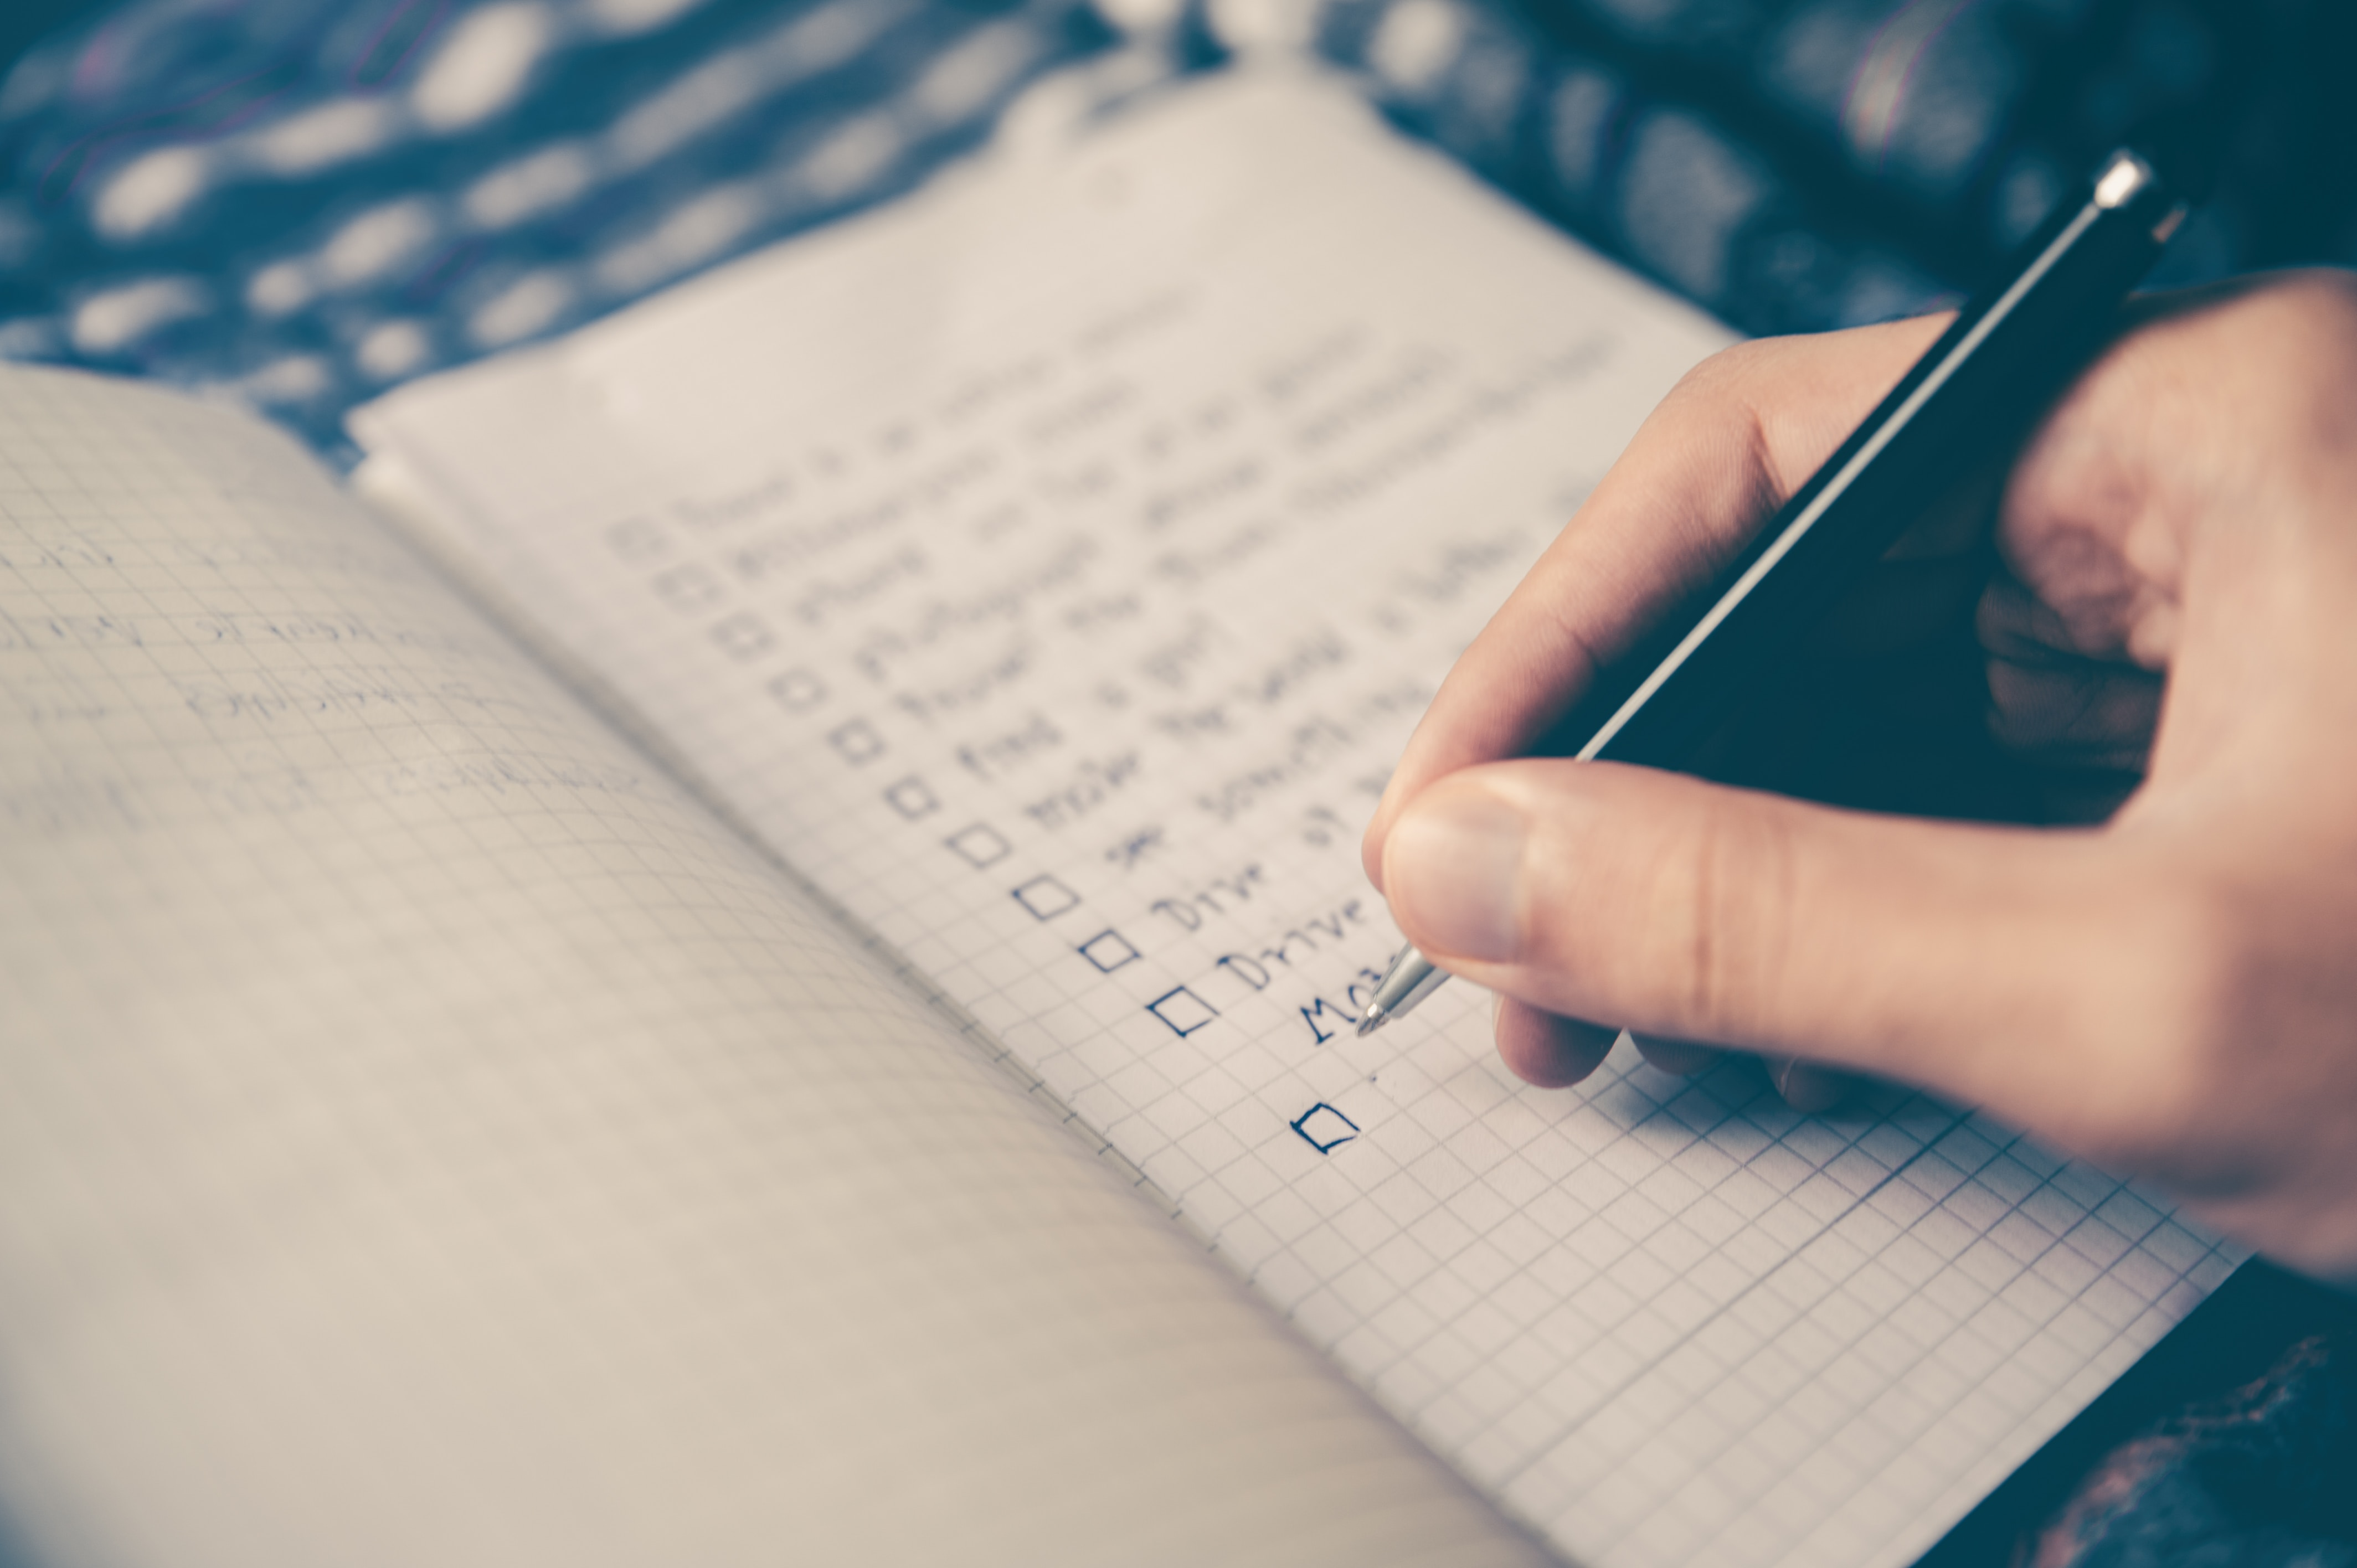 hand writing in a grid-style notebook, checking off items in a to do list for new years resolutions